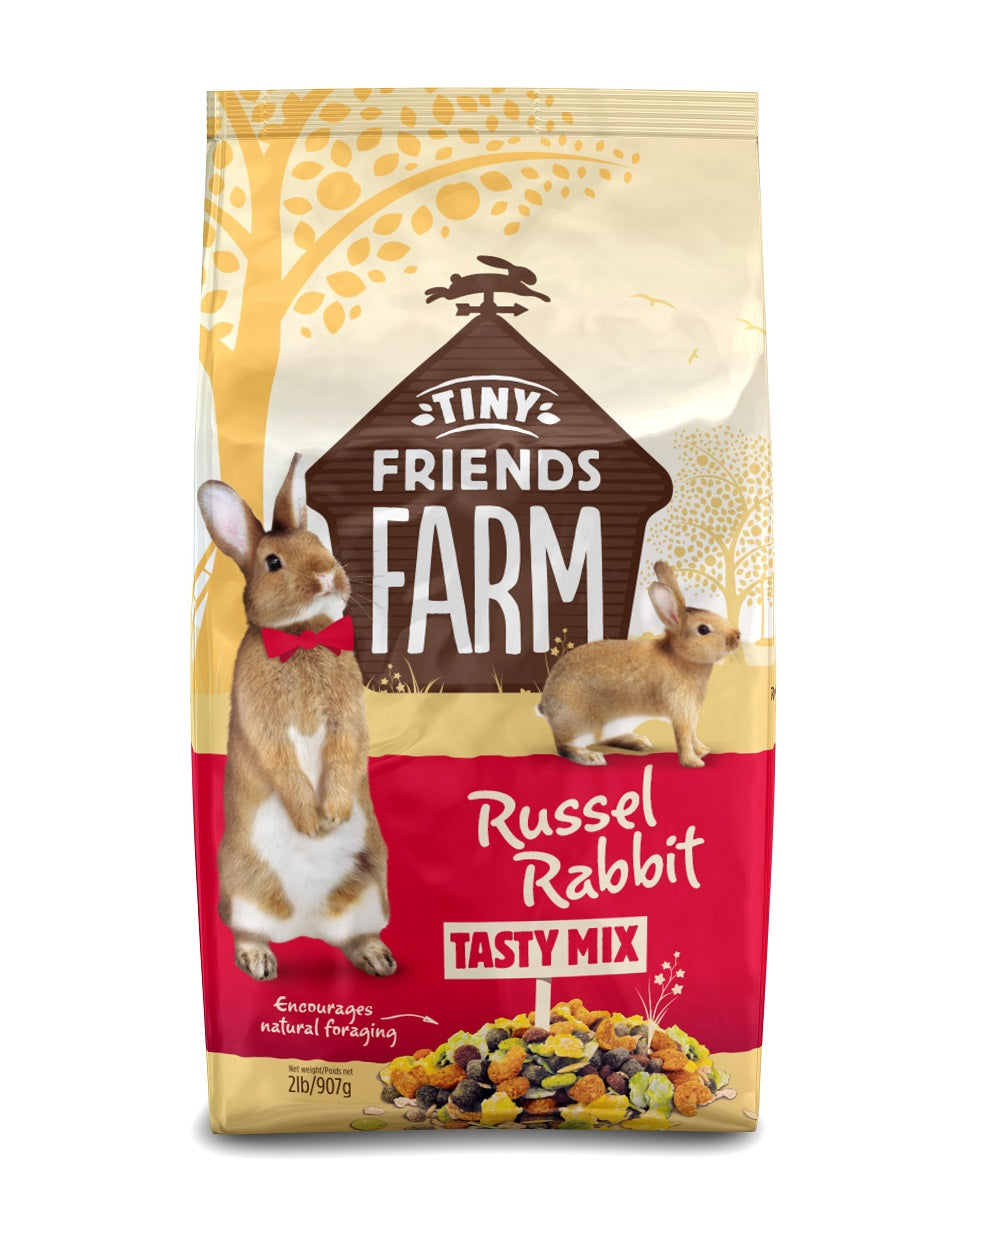 Supreme Pet Russel Rabbit Food 2lb